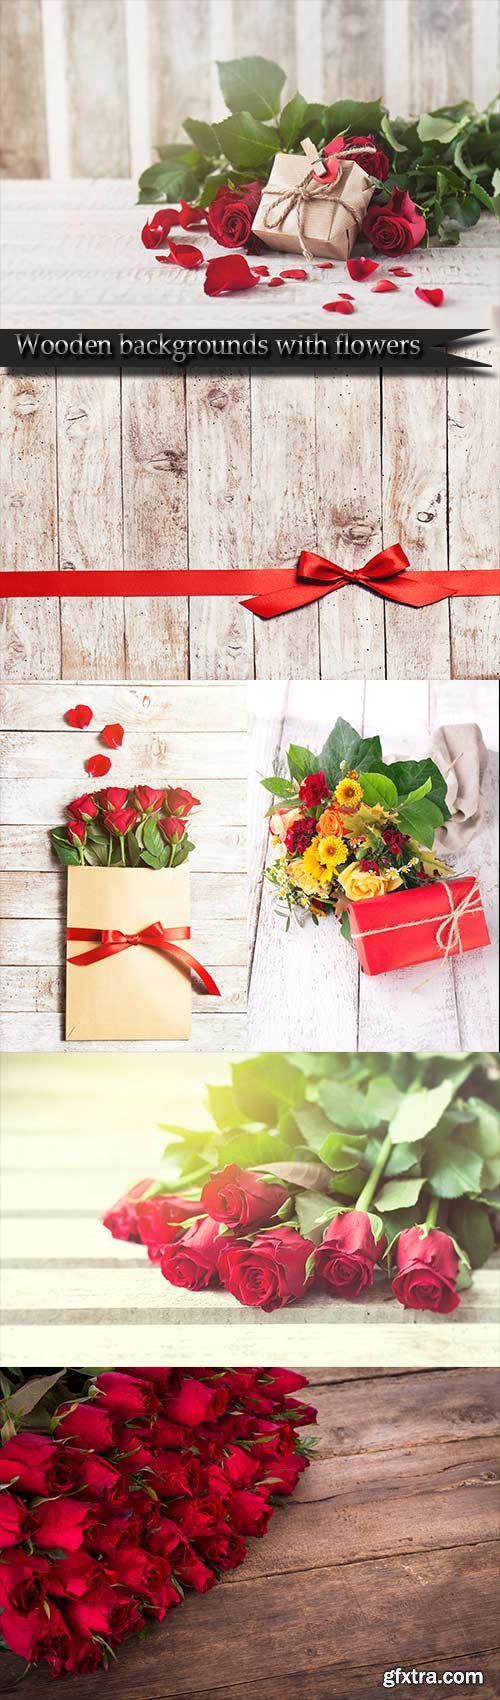 Wooden backgrounds with flowers